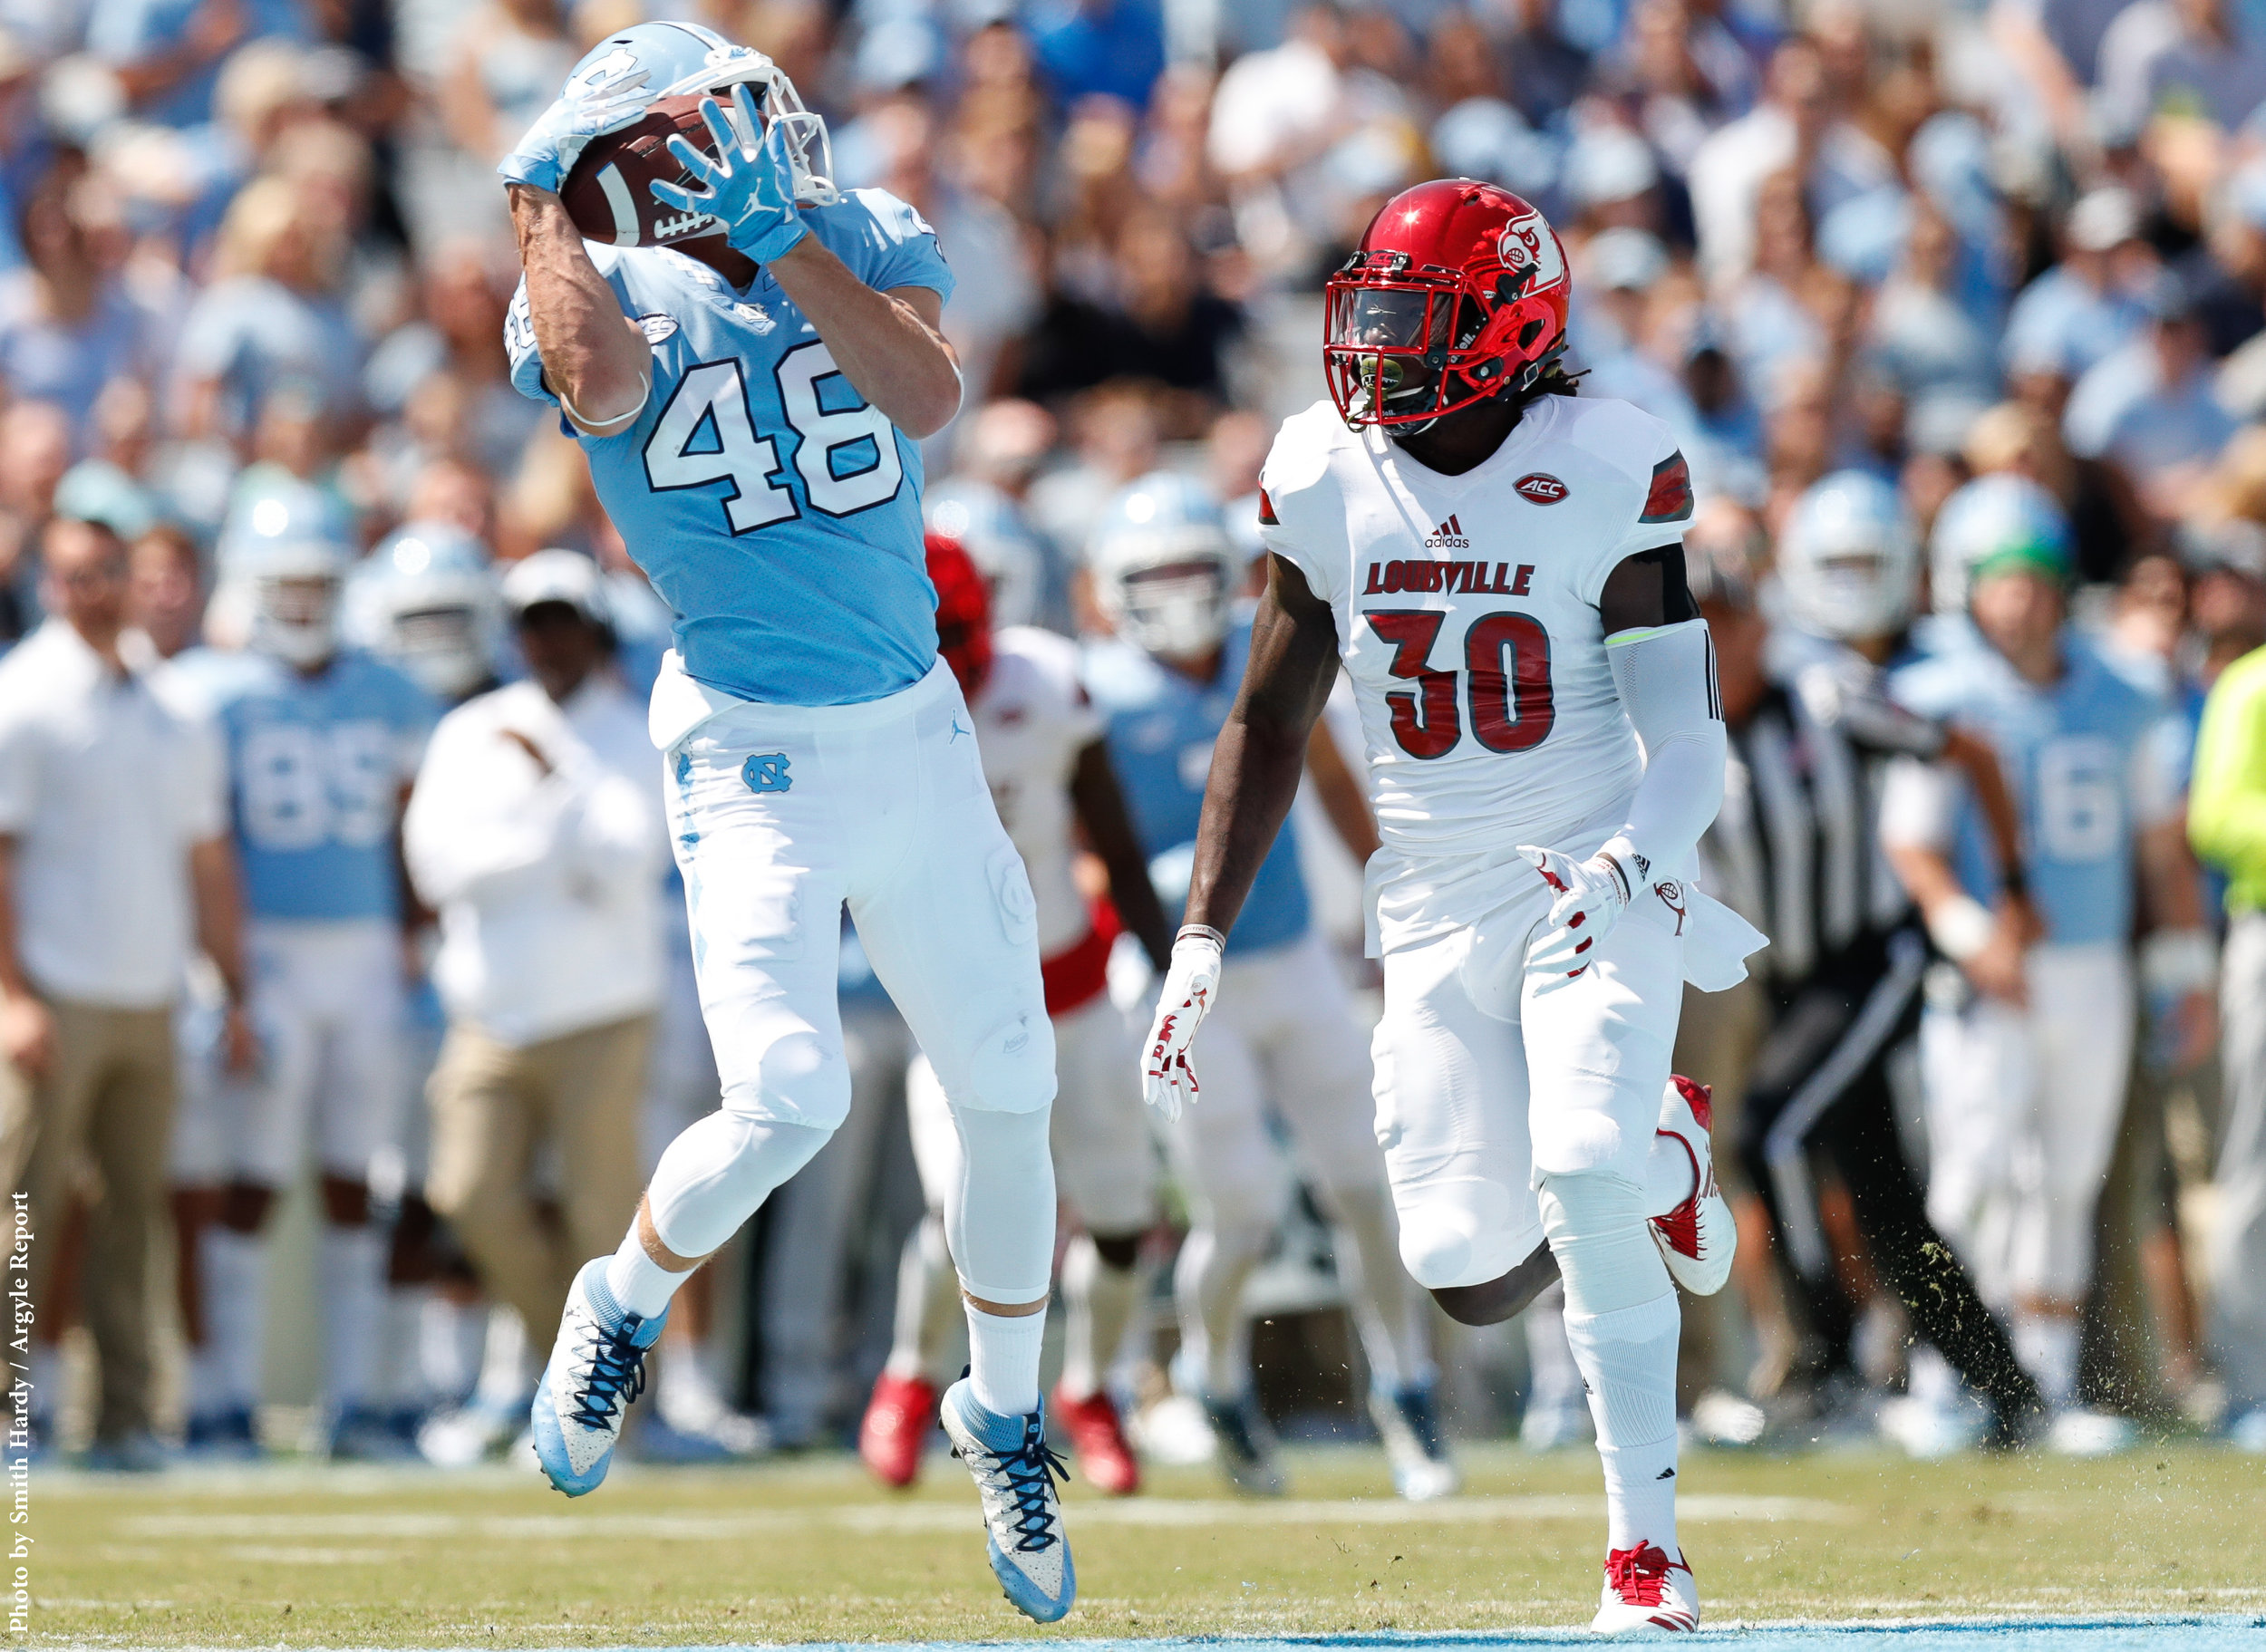 Tarheels vs Cards Football 2017 (4 of 25).jpg